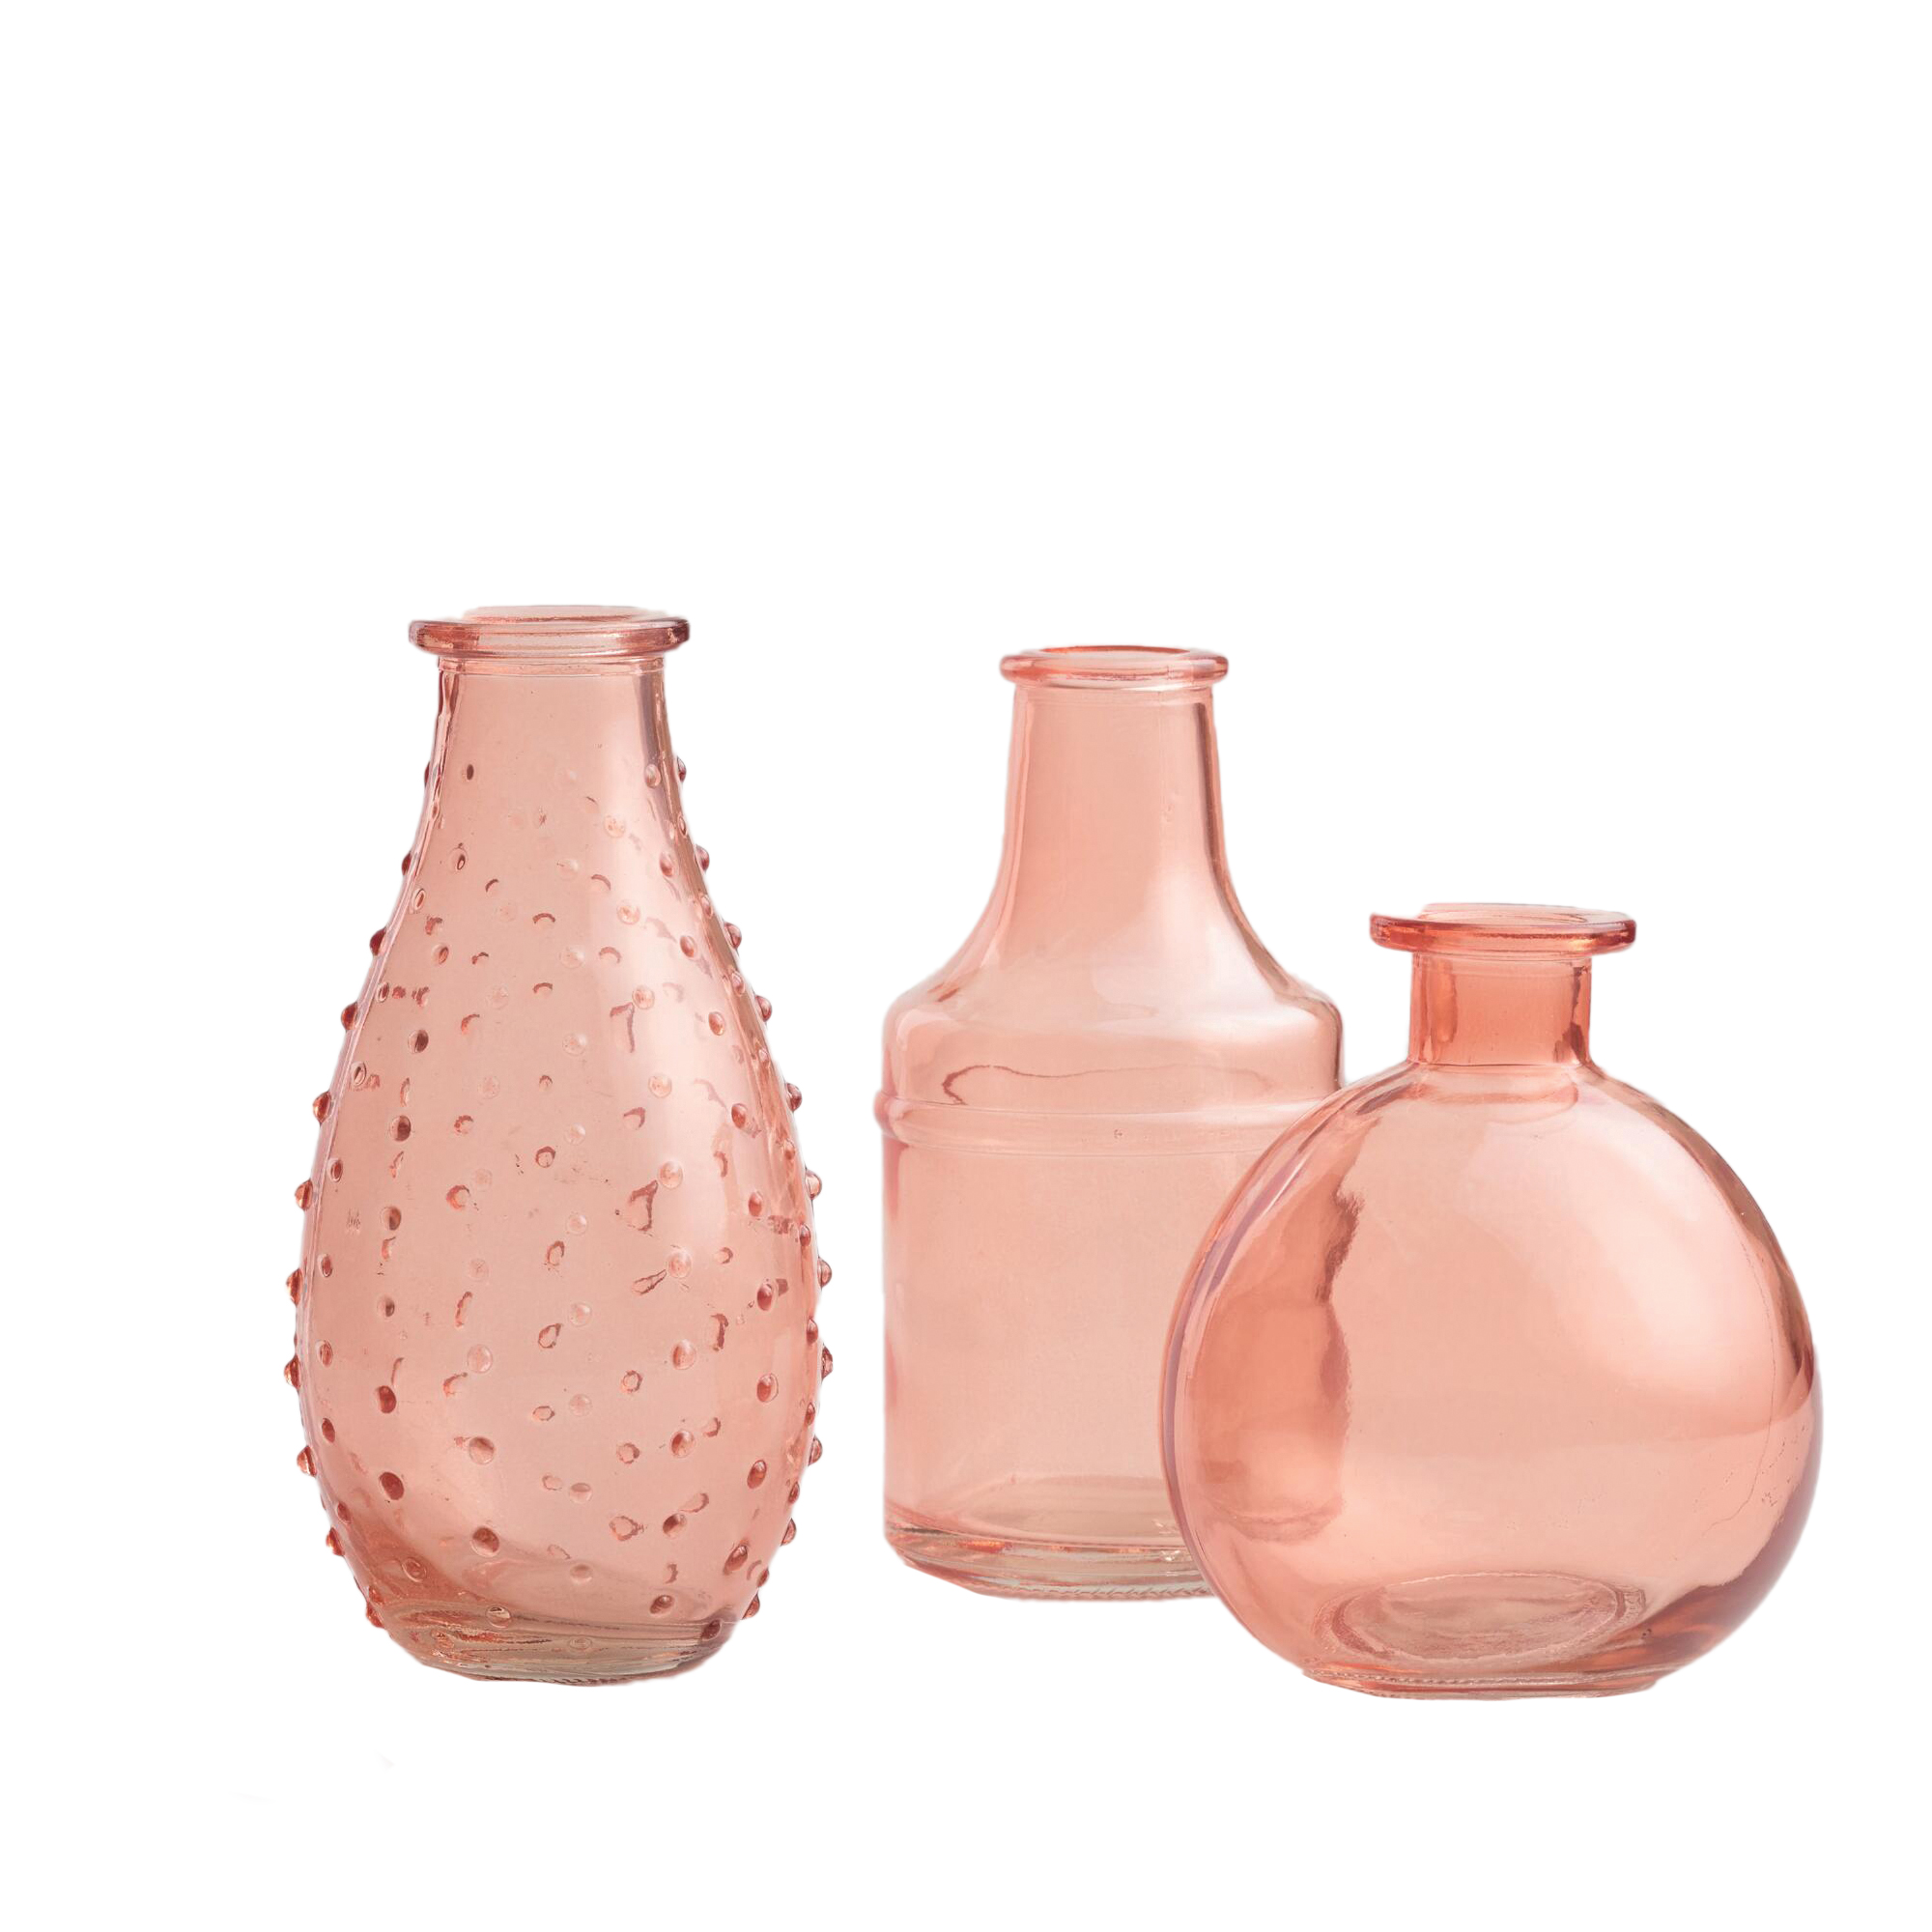 coral glass bud vases set of 3, 5.97 world market.jpg